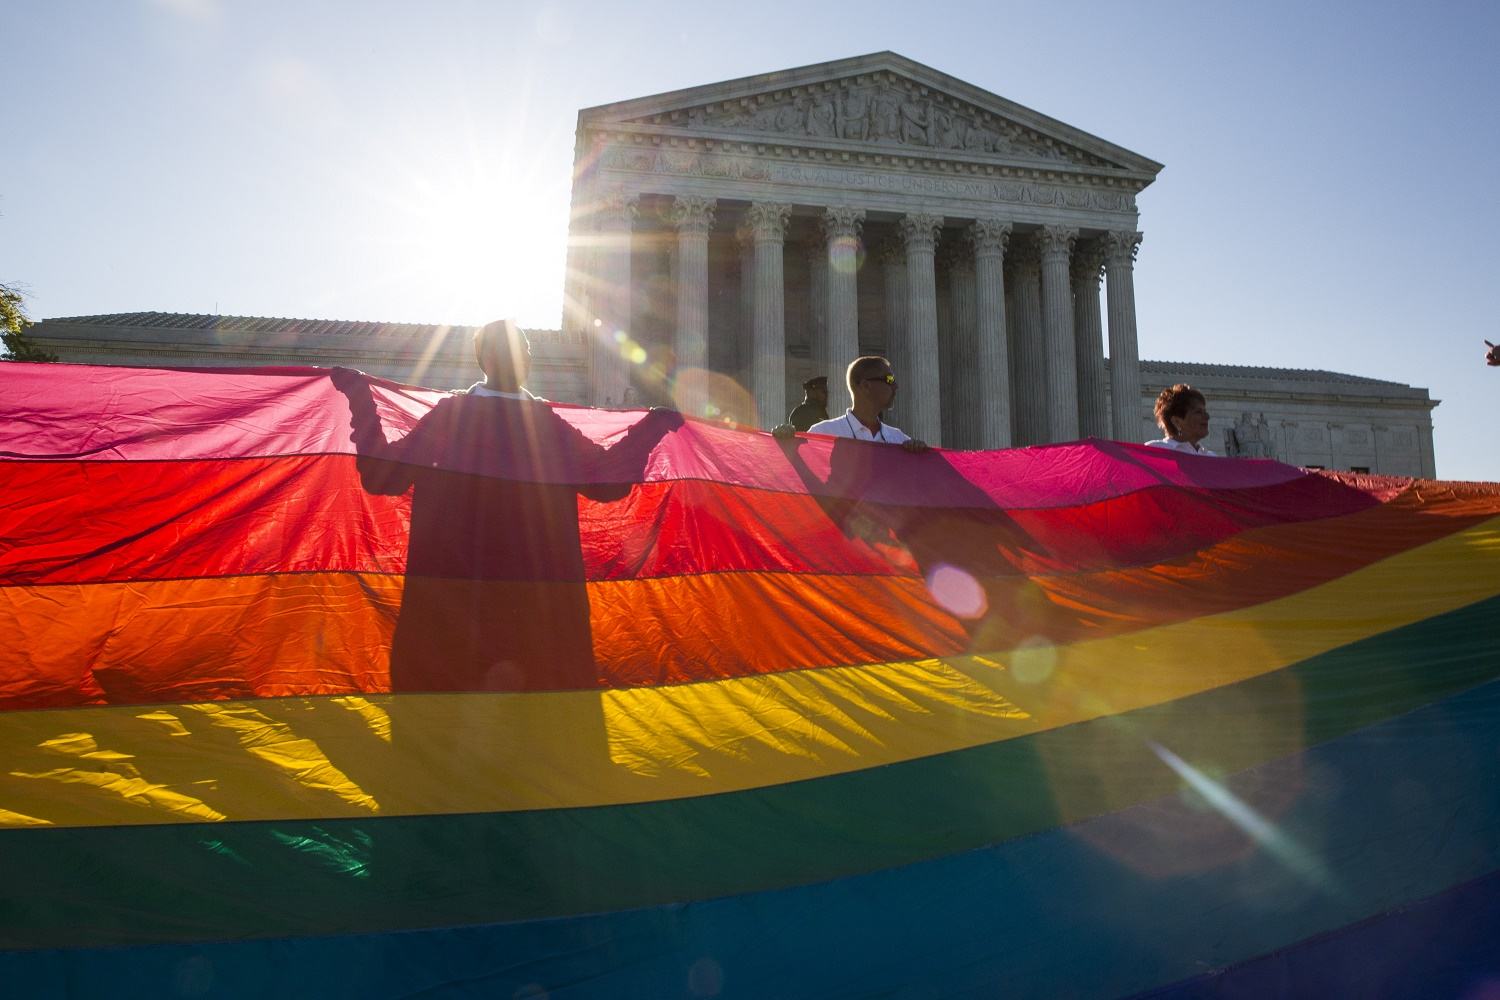 WASHINGTON, DC - APRIL 28: Supporters and opponents of same-sex marriage demonstrate near the Supreme Court, April 28, 2015 in Washington, DC. On Tuesday the Supreme Court will hear arguments concerning whether same-sex marriage is a constitutional right, with decisions expected in June. (Drew Angerer/Getty Images)